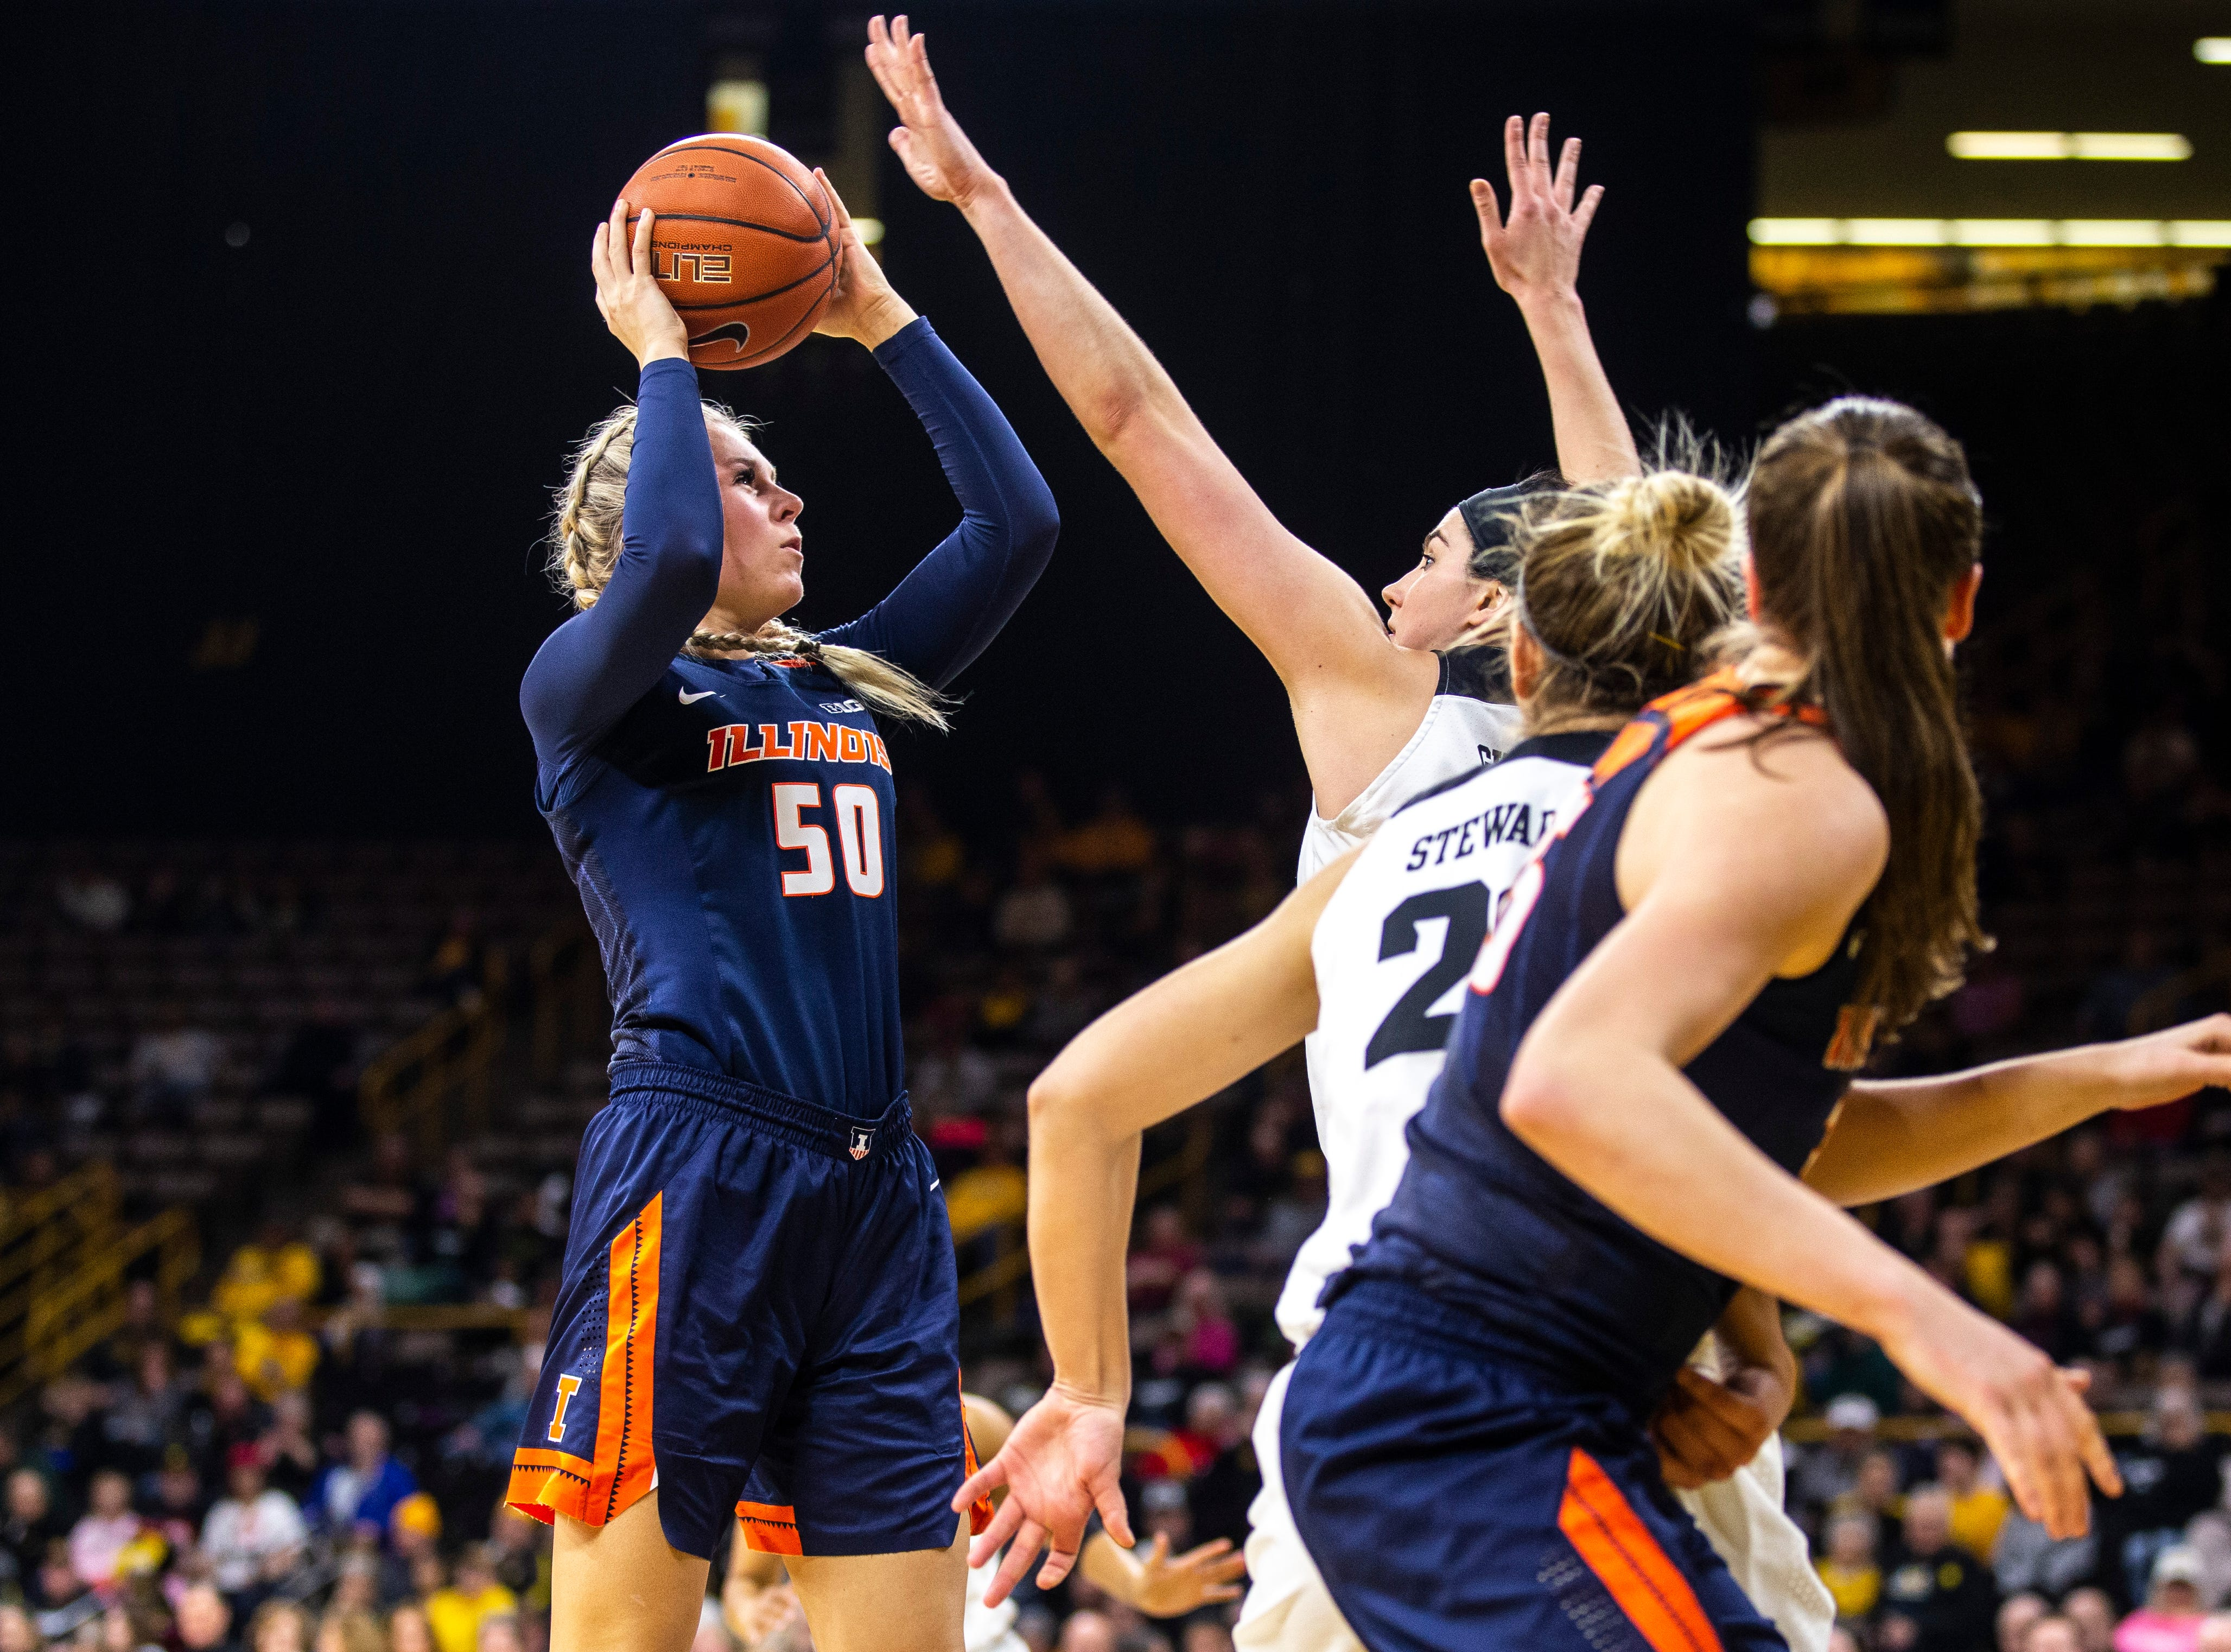 Illinois forward Ali Andrews (50) shoots while Iowa center Megan Gustafson (10) defends during a NCAA Big Ten Conference women's basketball game on Thursday, Feb. 14, 2019 at Carver-Hawkeye Arena in Iowa City, Iowa.